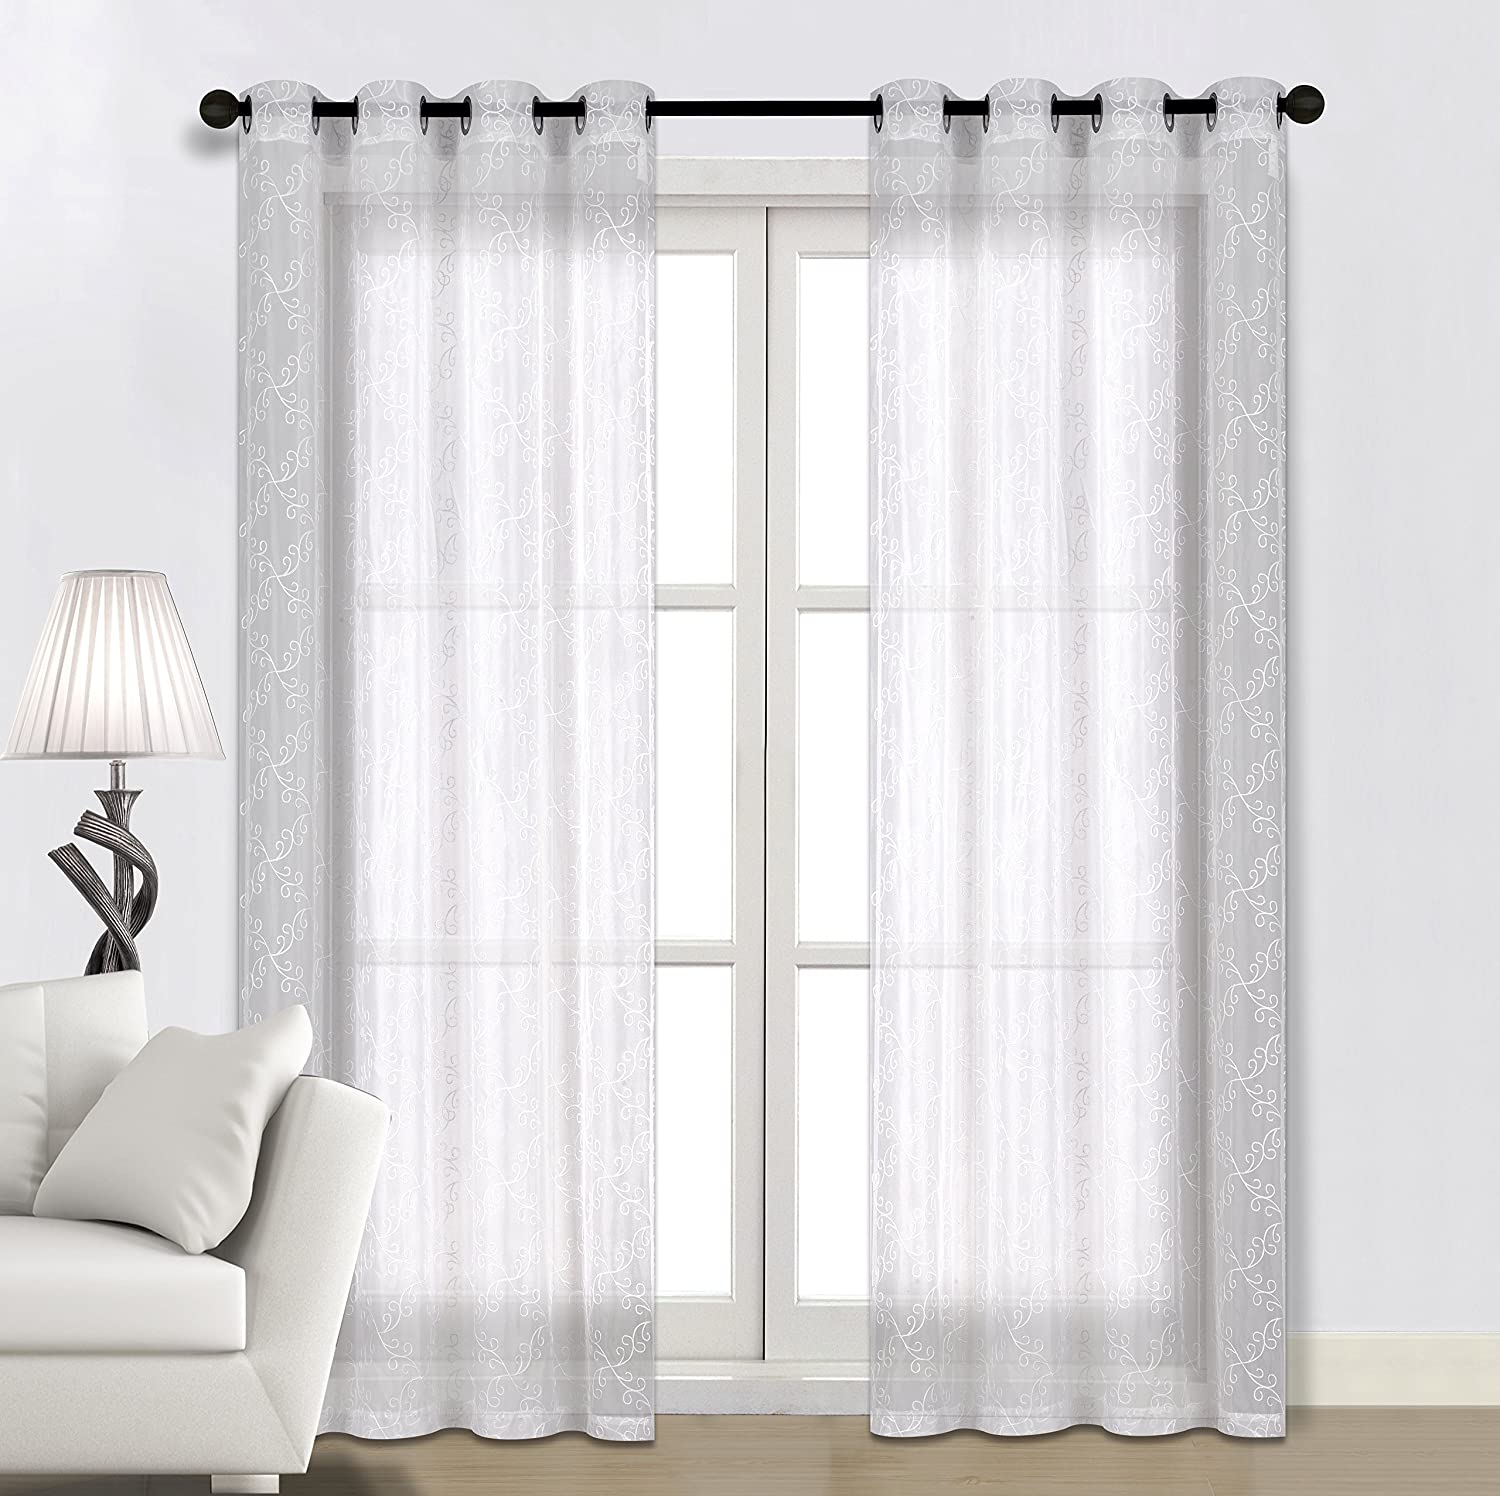 Valea Home Grommet Voile Sheer Curtains Floral Embroidered Window Treatments